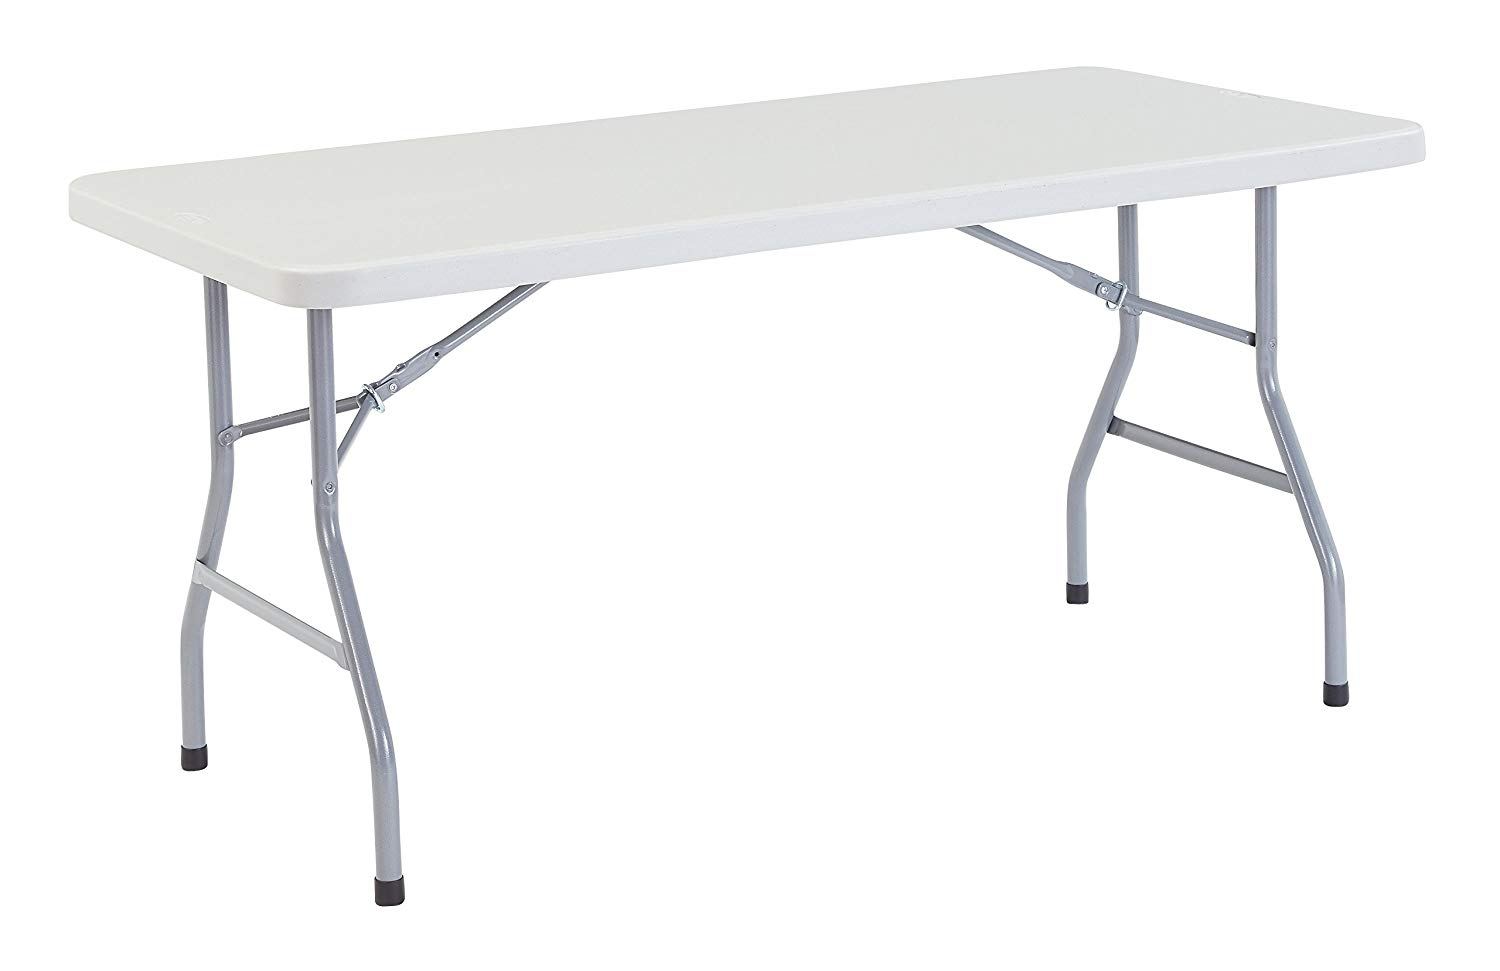 Grey 5′ heavy duty rectangle table - 1 available | Rent for $5